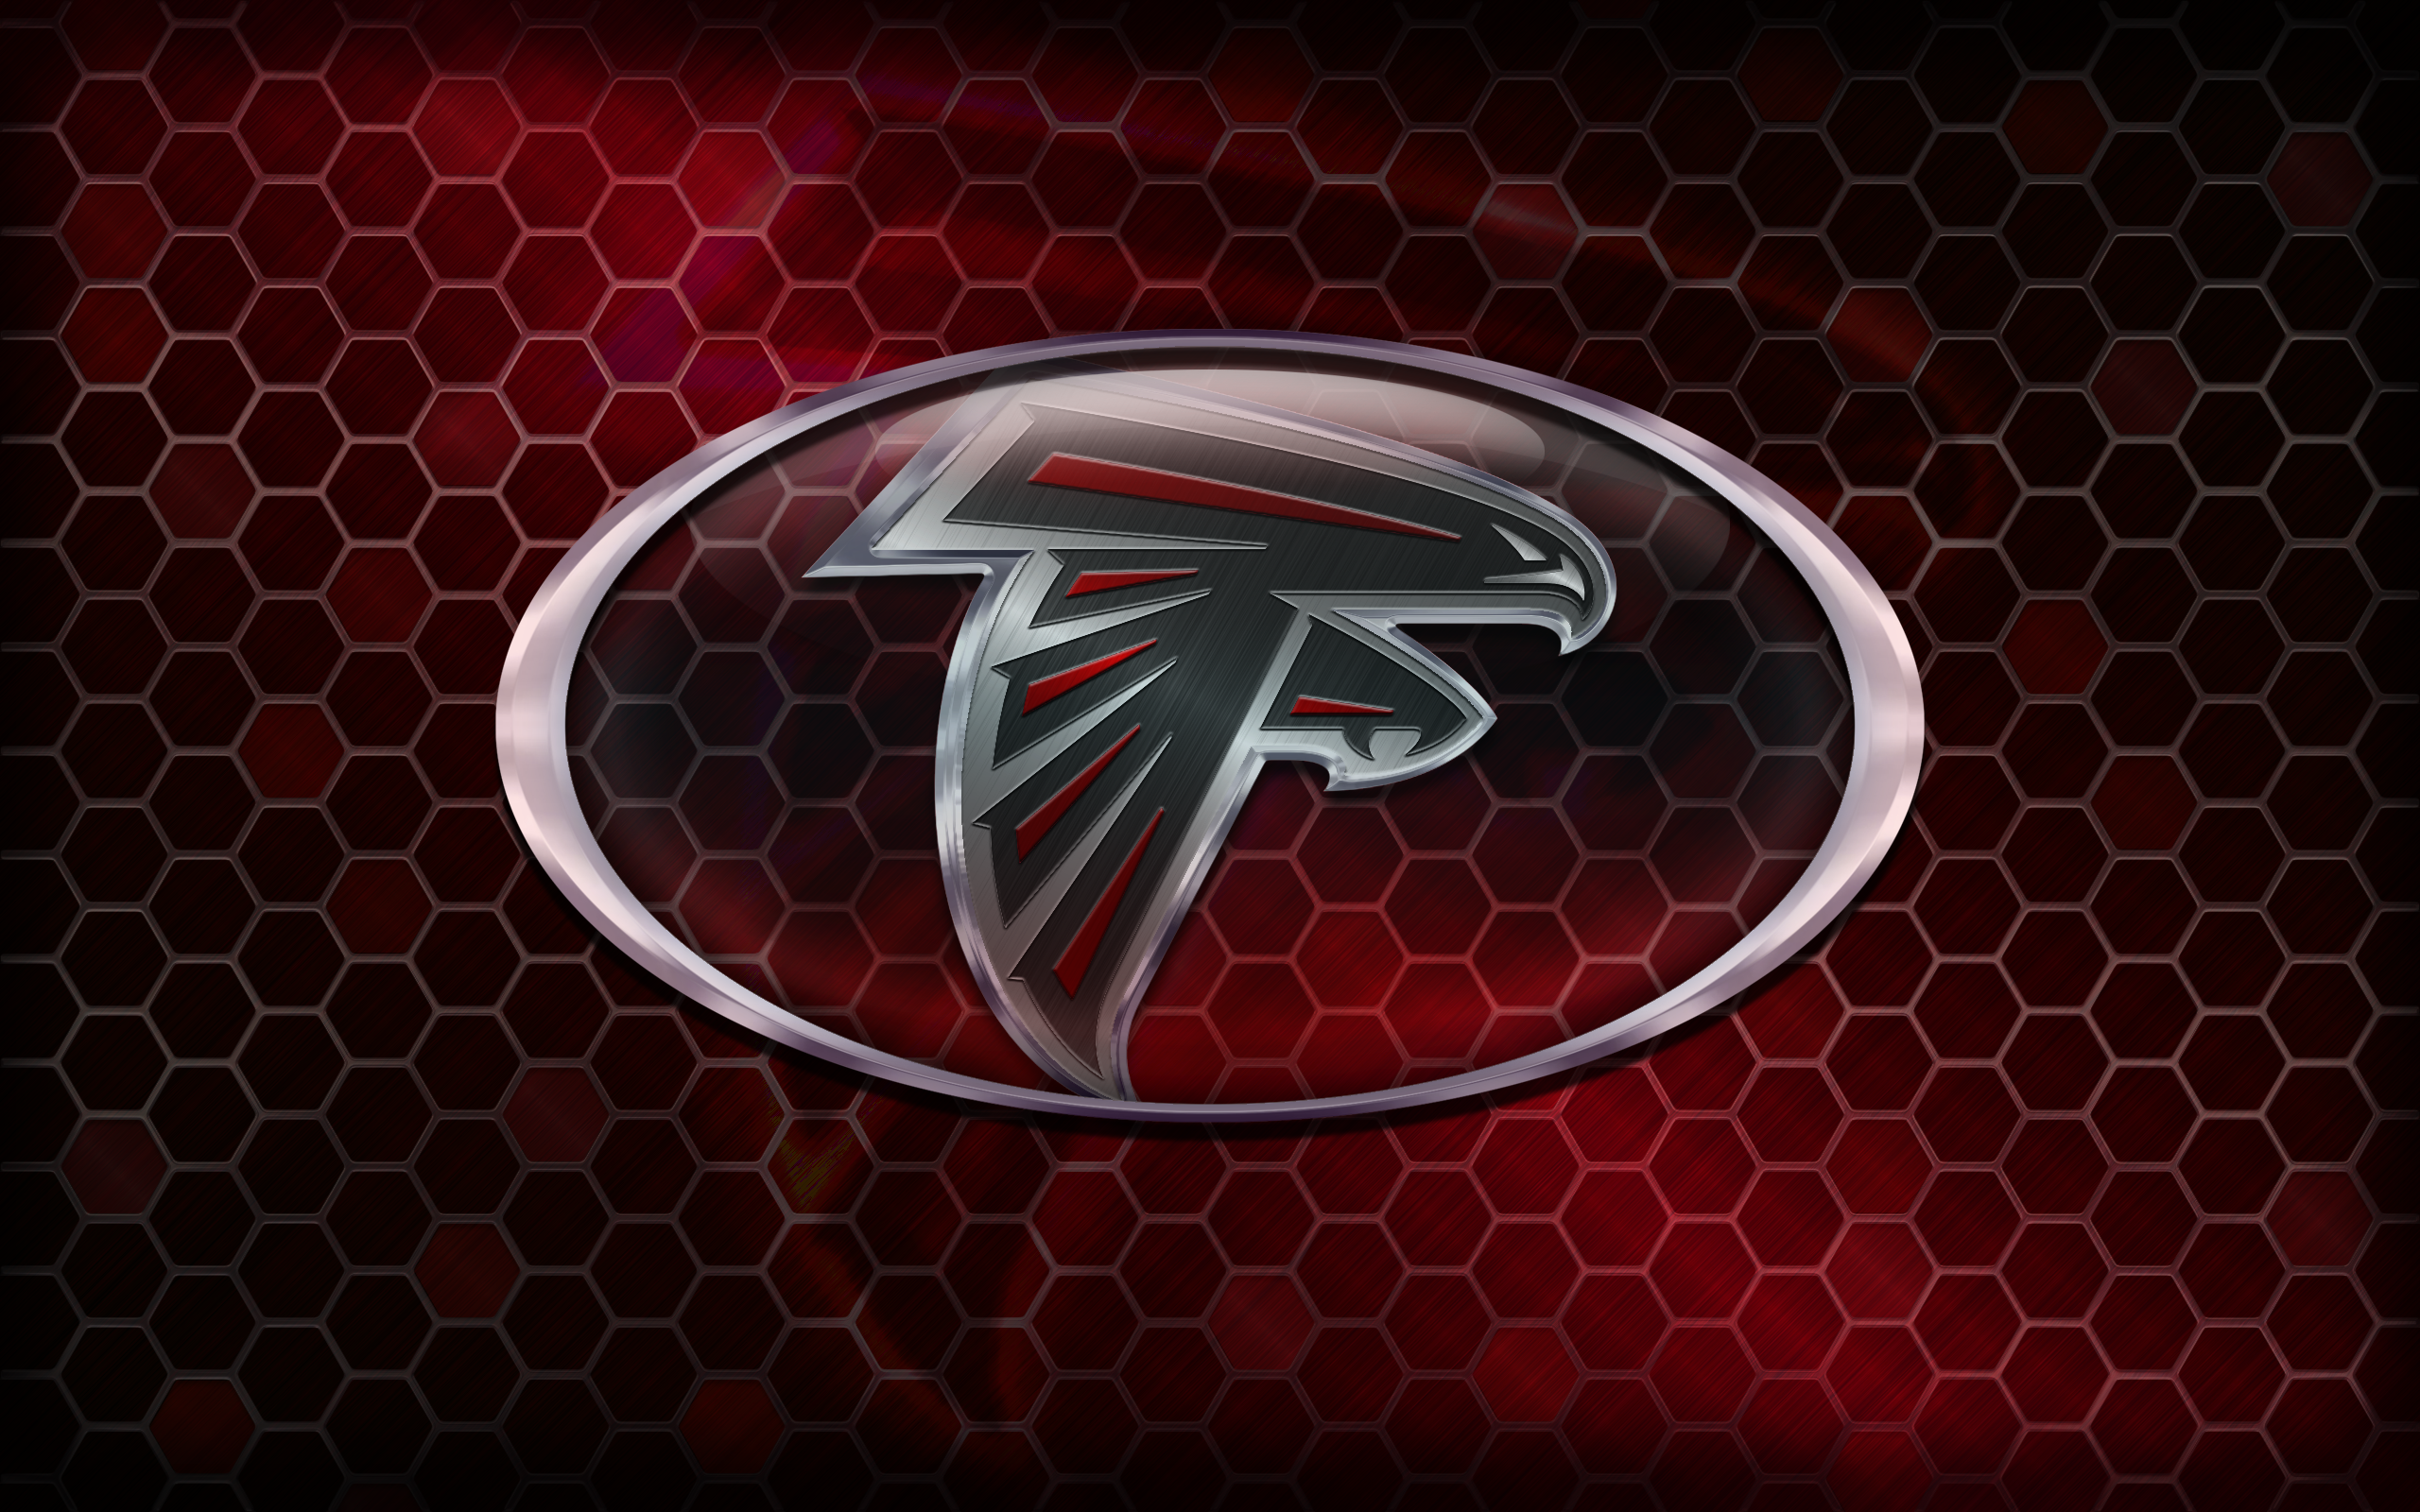 Download Free Falcons Wallpapers 3 Beautiful Collection: ATLANTA FALCONS Nfl Football Fr Wallpaper